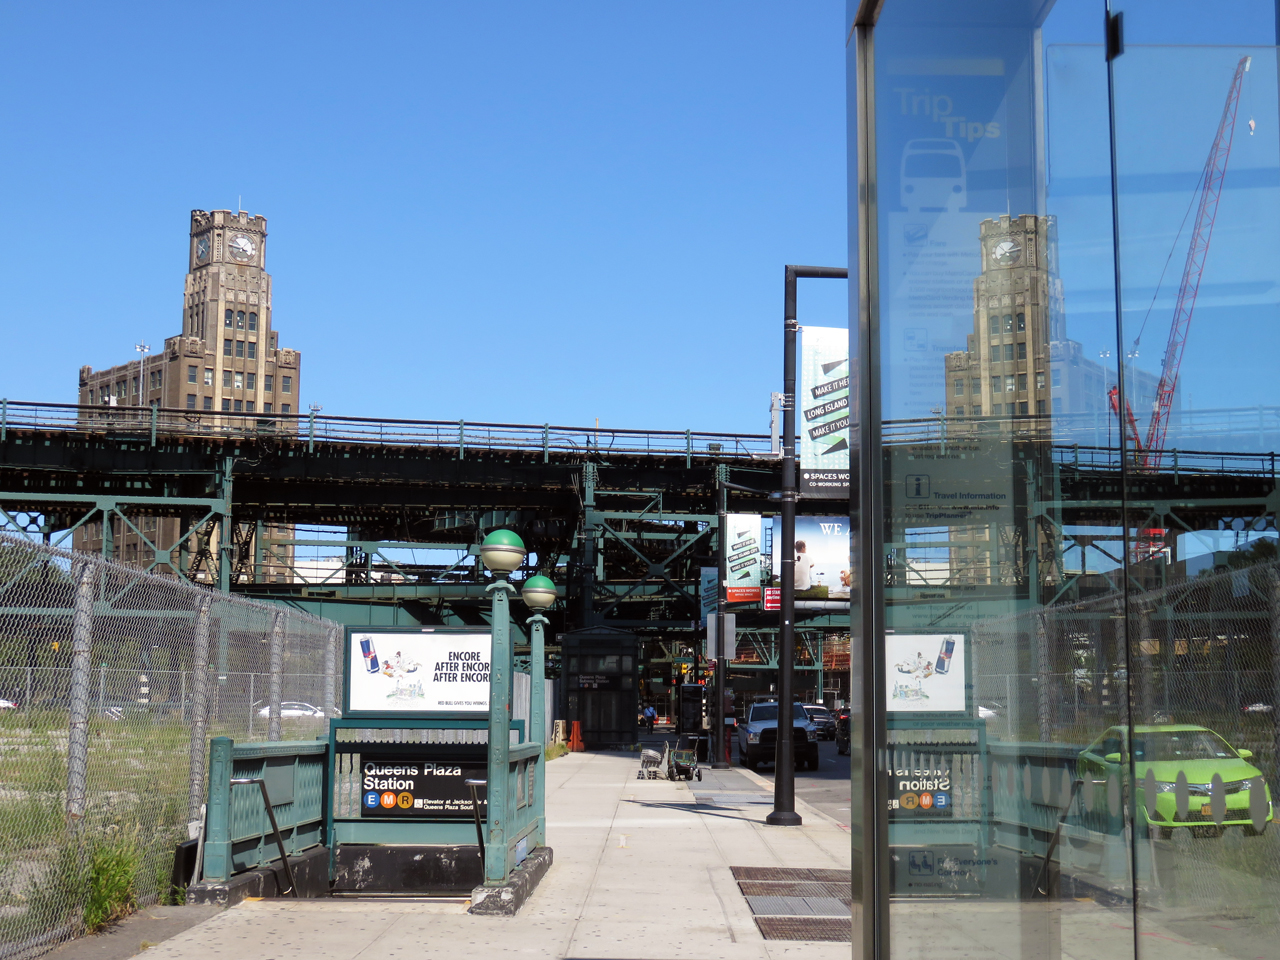 IMG_7780-Queens-Plaza-station-Jackson-Ave-tothene-small